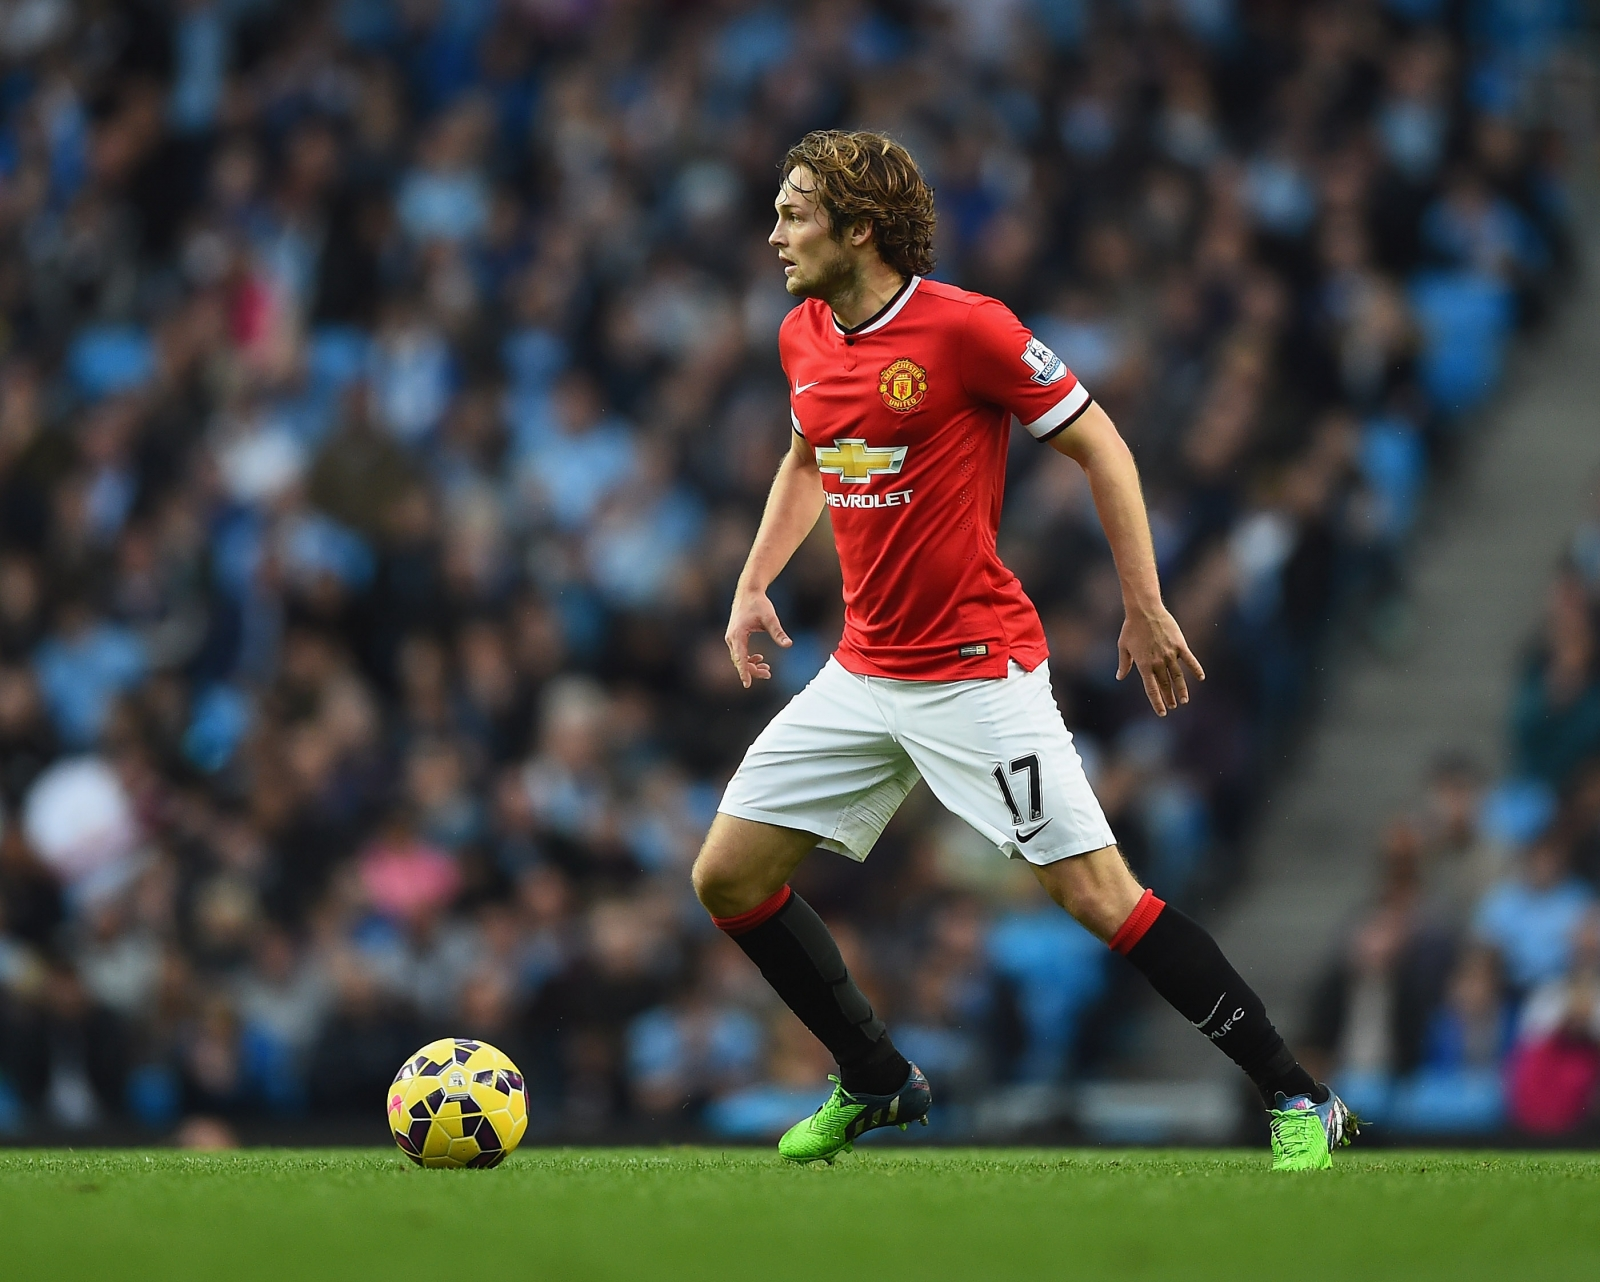 Arsenal vs Manchester United Daley Blind confident of win on